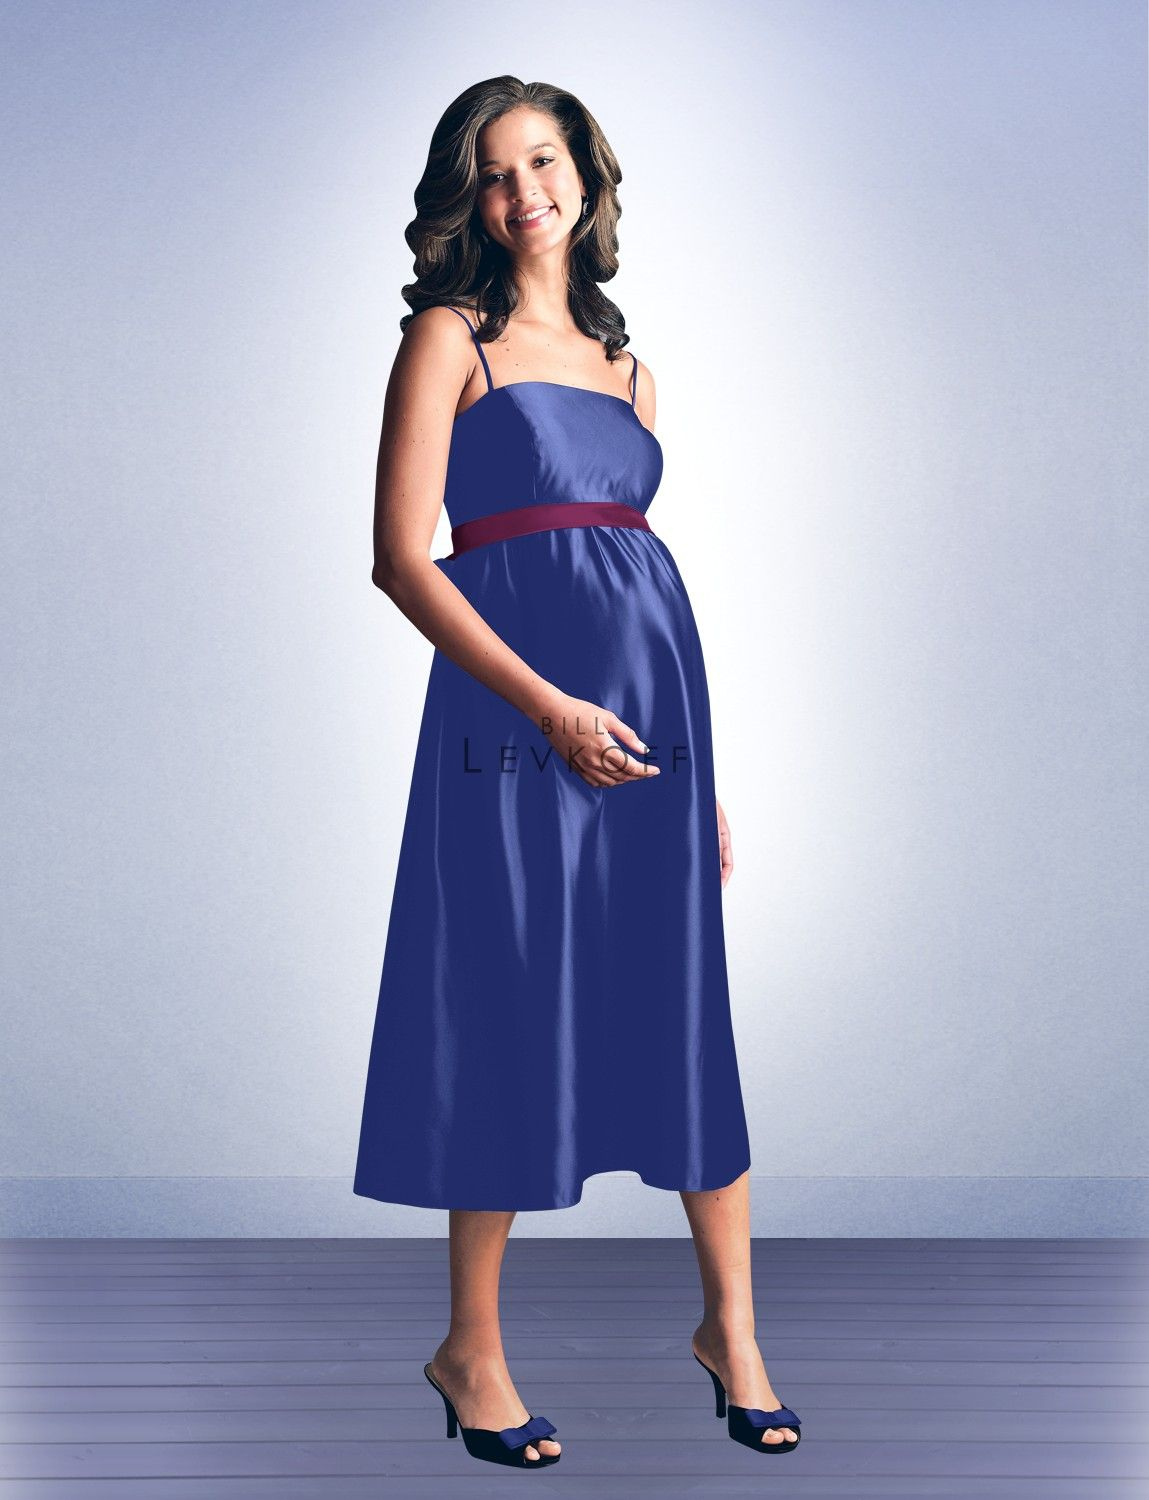 Maternity dress styles are available to order as well!